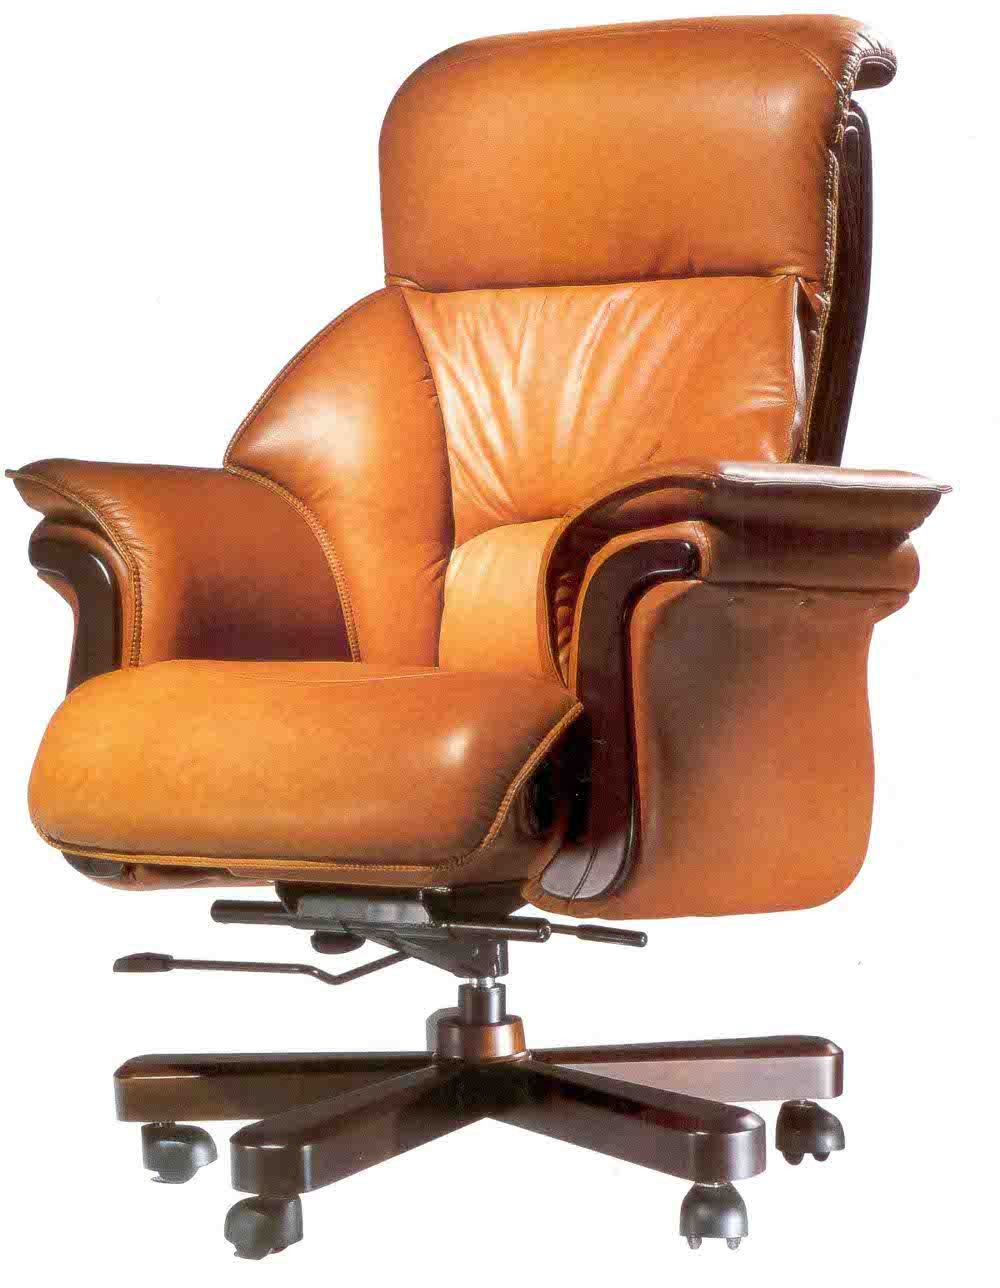 Orange leather office chair executive home office furniture check more at http